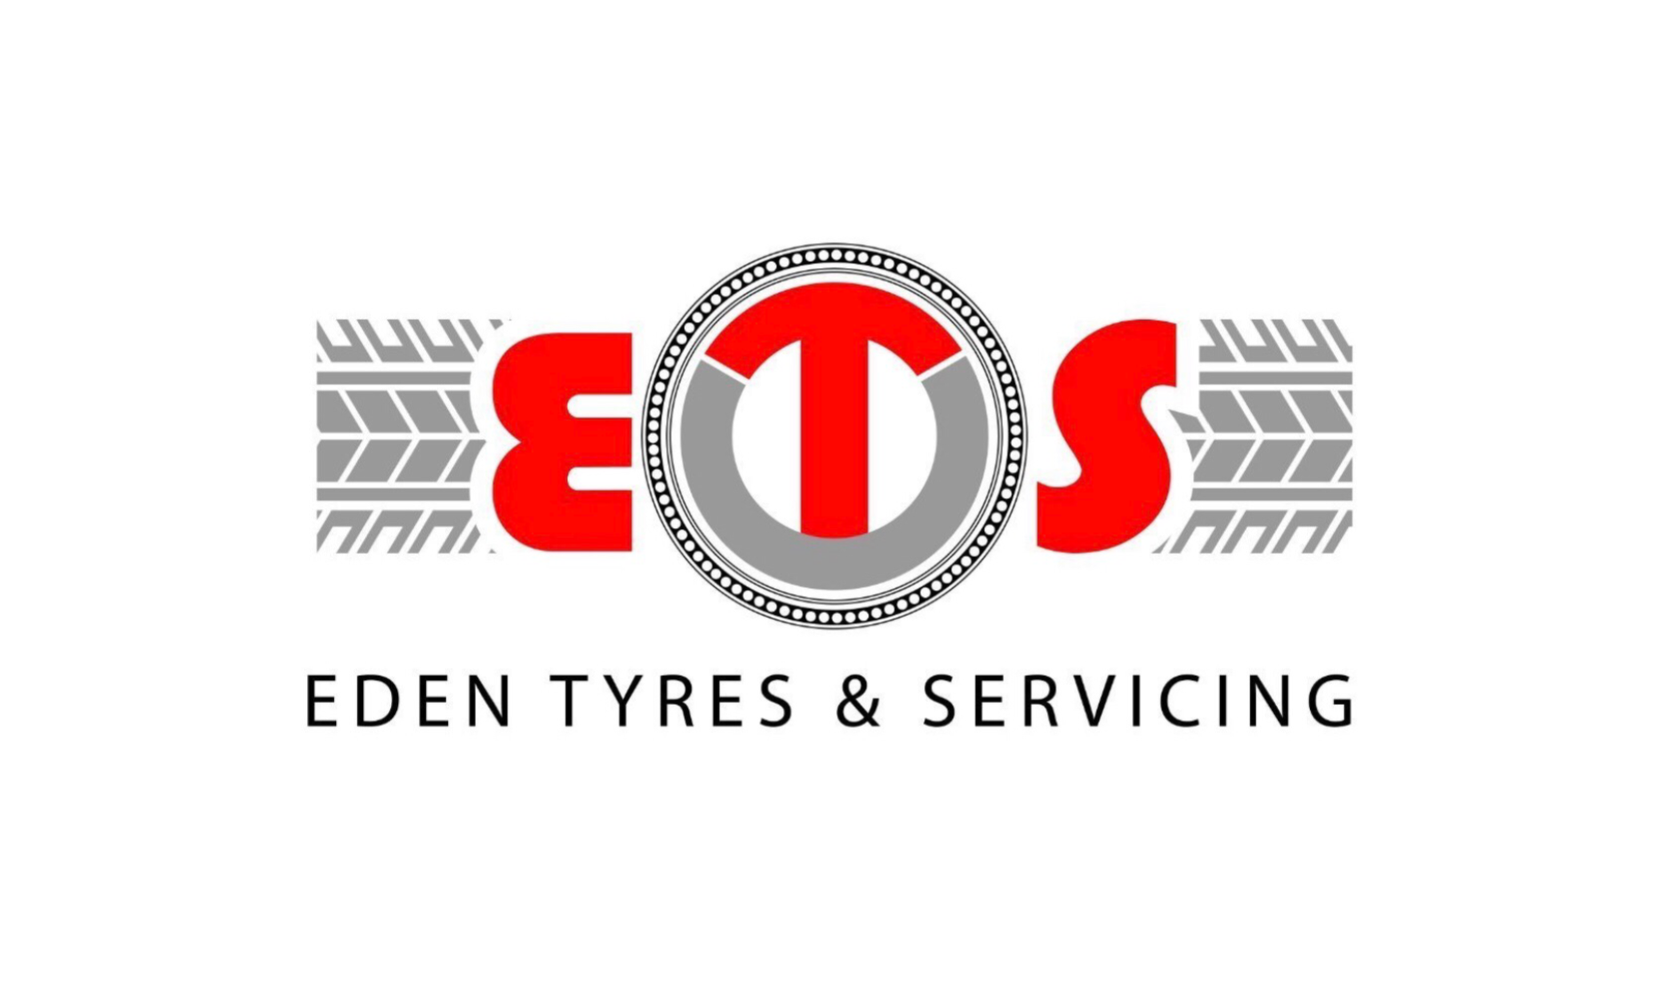 EDEN TYRES ARE DELIGHTED TO MOVE TO OUR NEW OUTSTANDING DEVELOPMENT AT OPTIMUM BUSINESS PARK main image